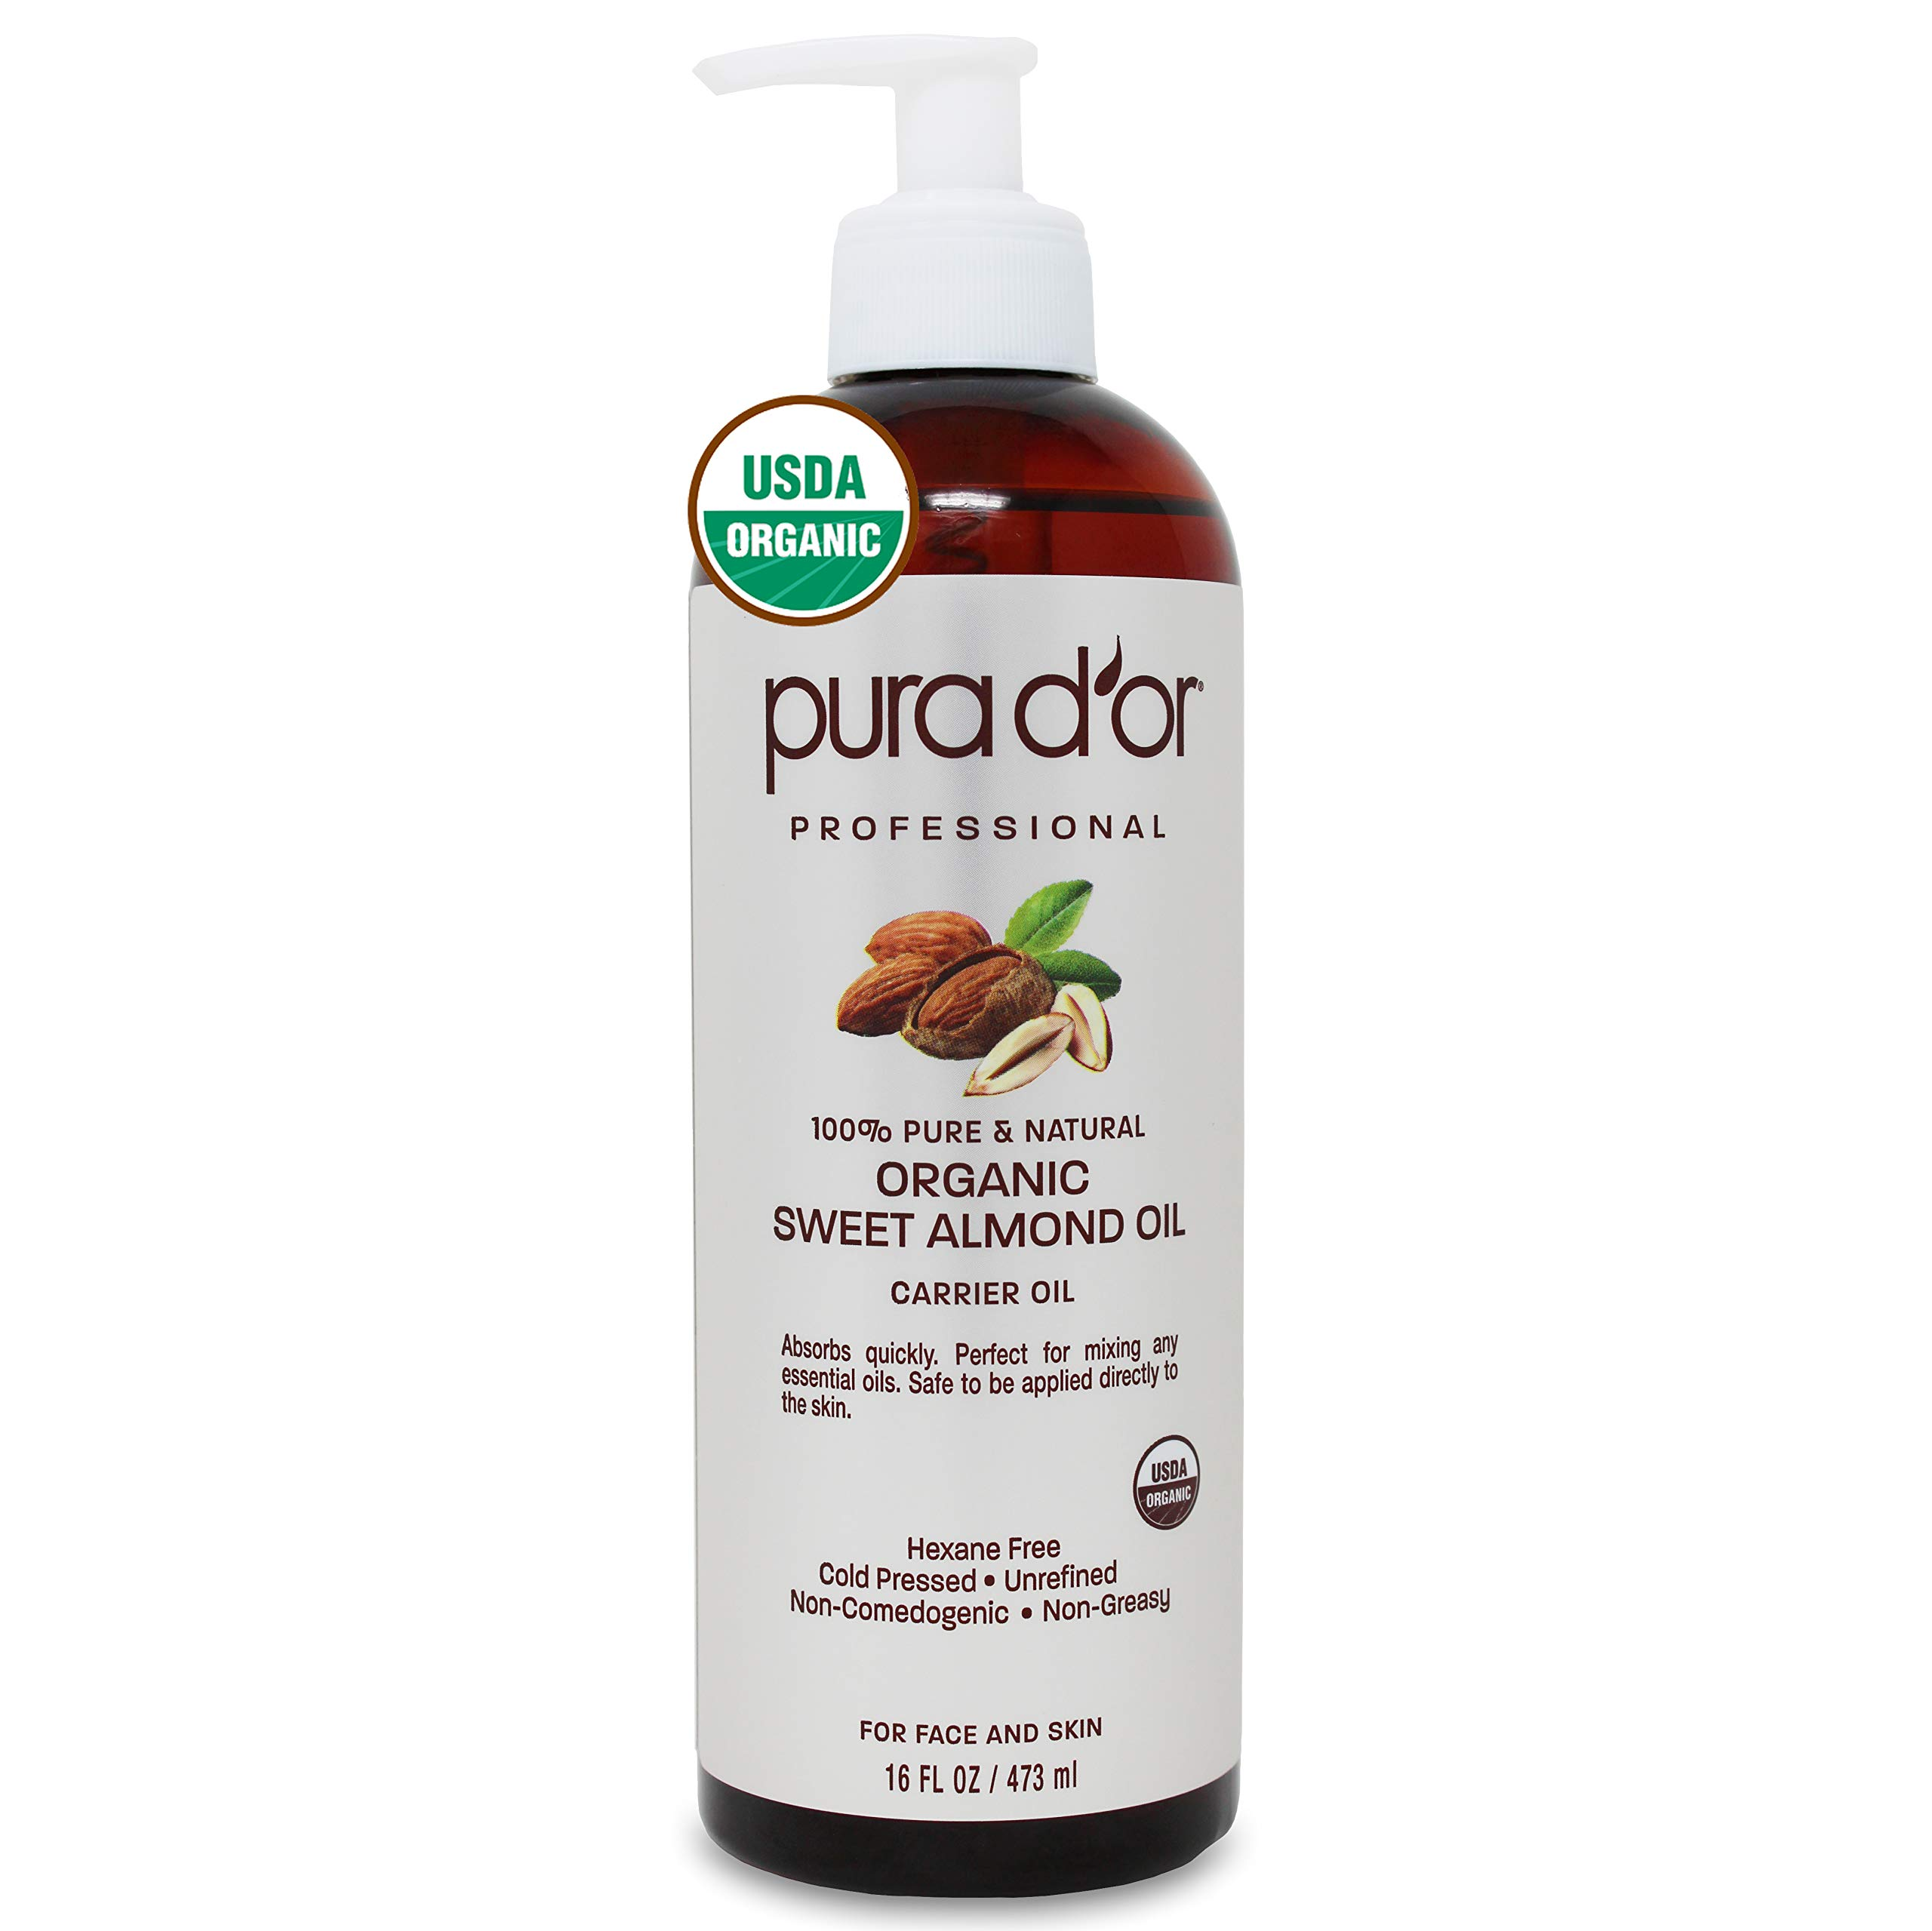 PURA D'OR Organic Sweet Almond Oil (16oz) Certified Organic 100% Pure & Natural Hexane Free Soothing Vitamin E Oil for Skin & Face, Facial Polish, Full Body, Massages, DIY Base (Packaging may vary)